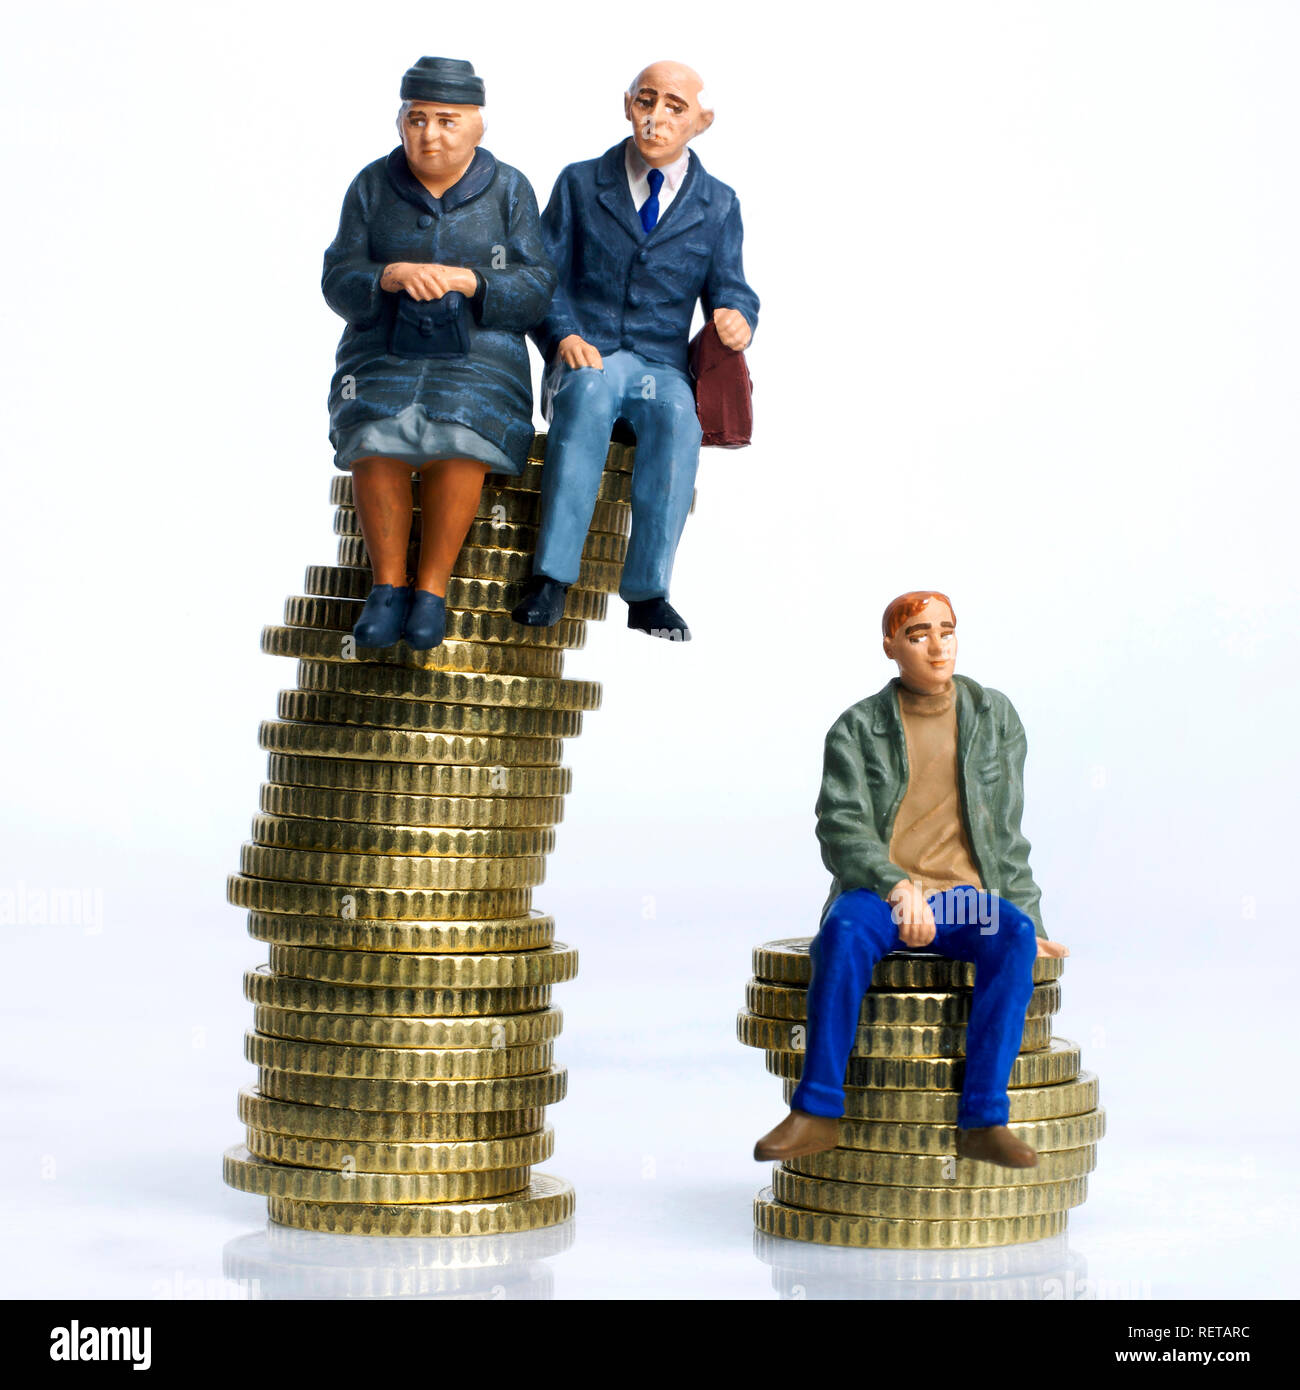 Symbol picture pension, Elderly couple and young man, figurines sitting on stack of coins - Stock Image